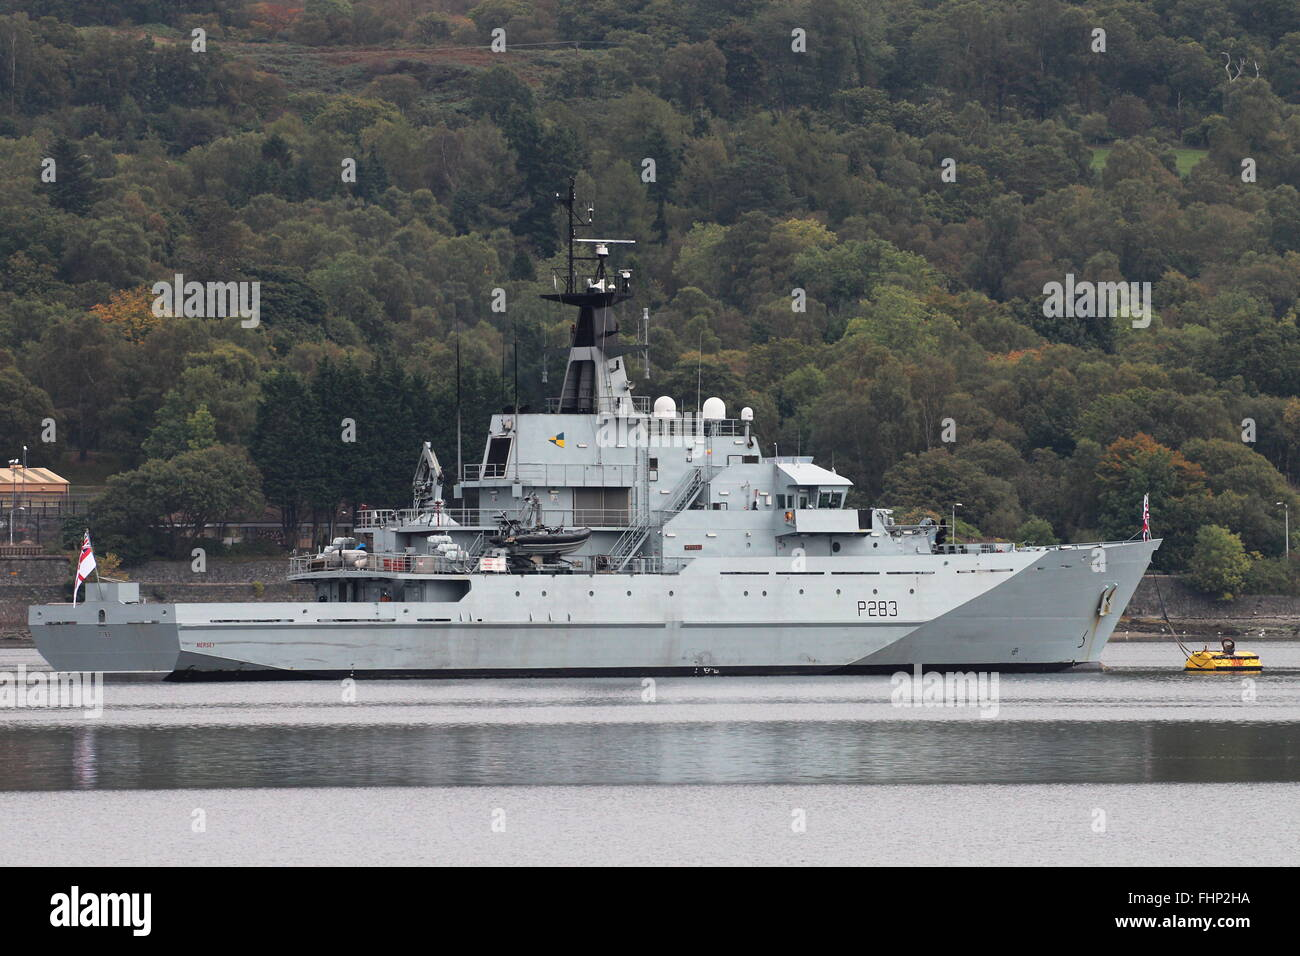 HMS Mersey (P283), a River-class patrol vessel of the Royal Navy, sits at anchor in the Gare Loch before Joint Warrior - Stock Image